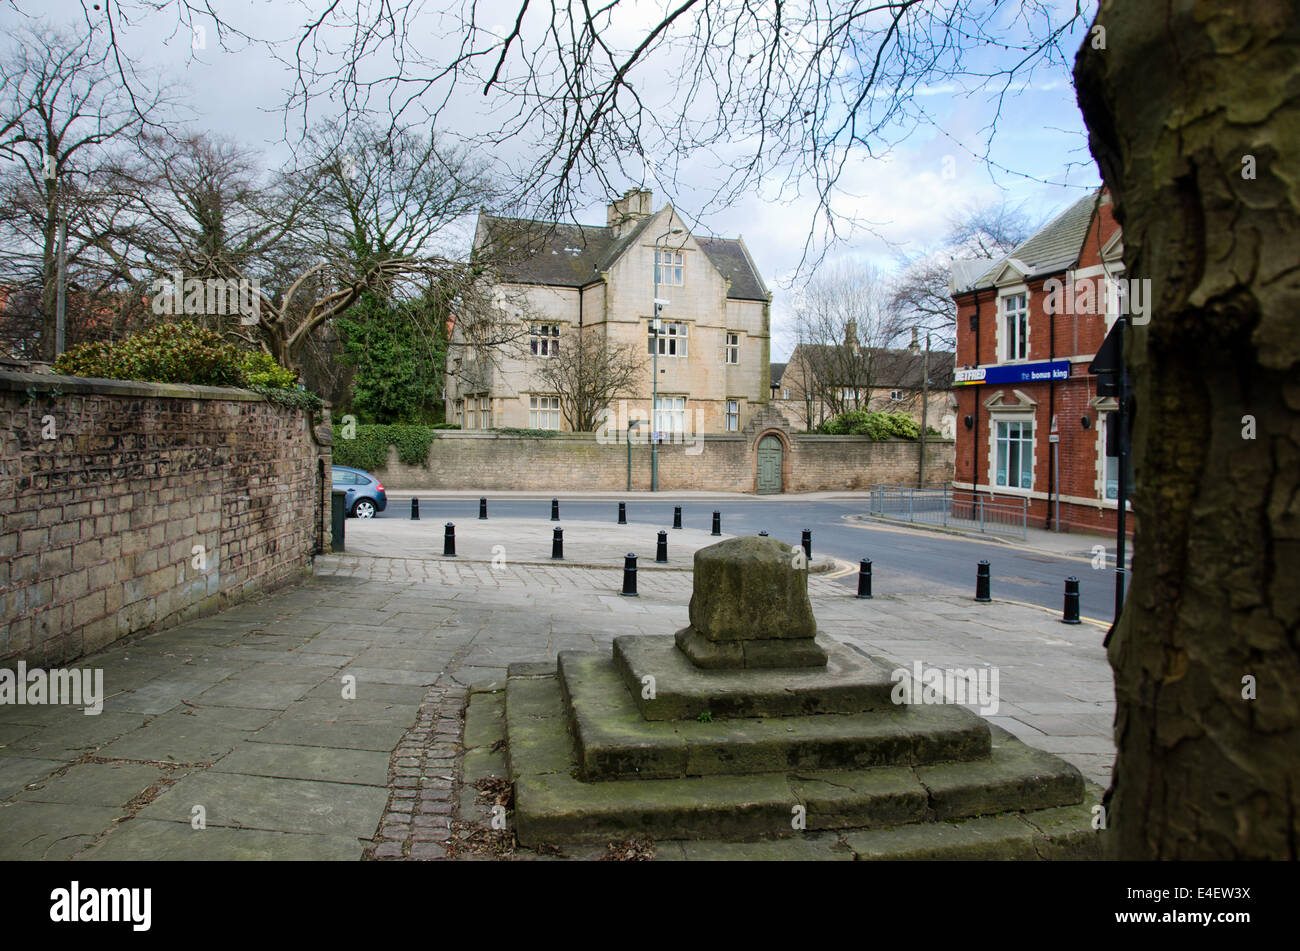 The remains of the old village cross a Scheduled Ancient Monument with Clerkson's Hall in the background - Stock Image